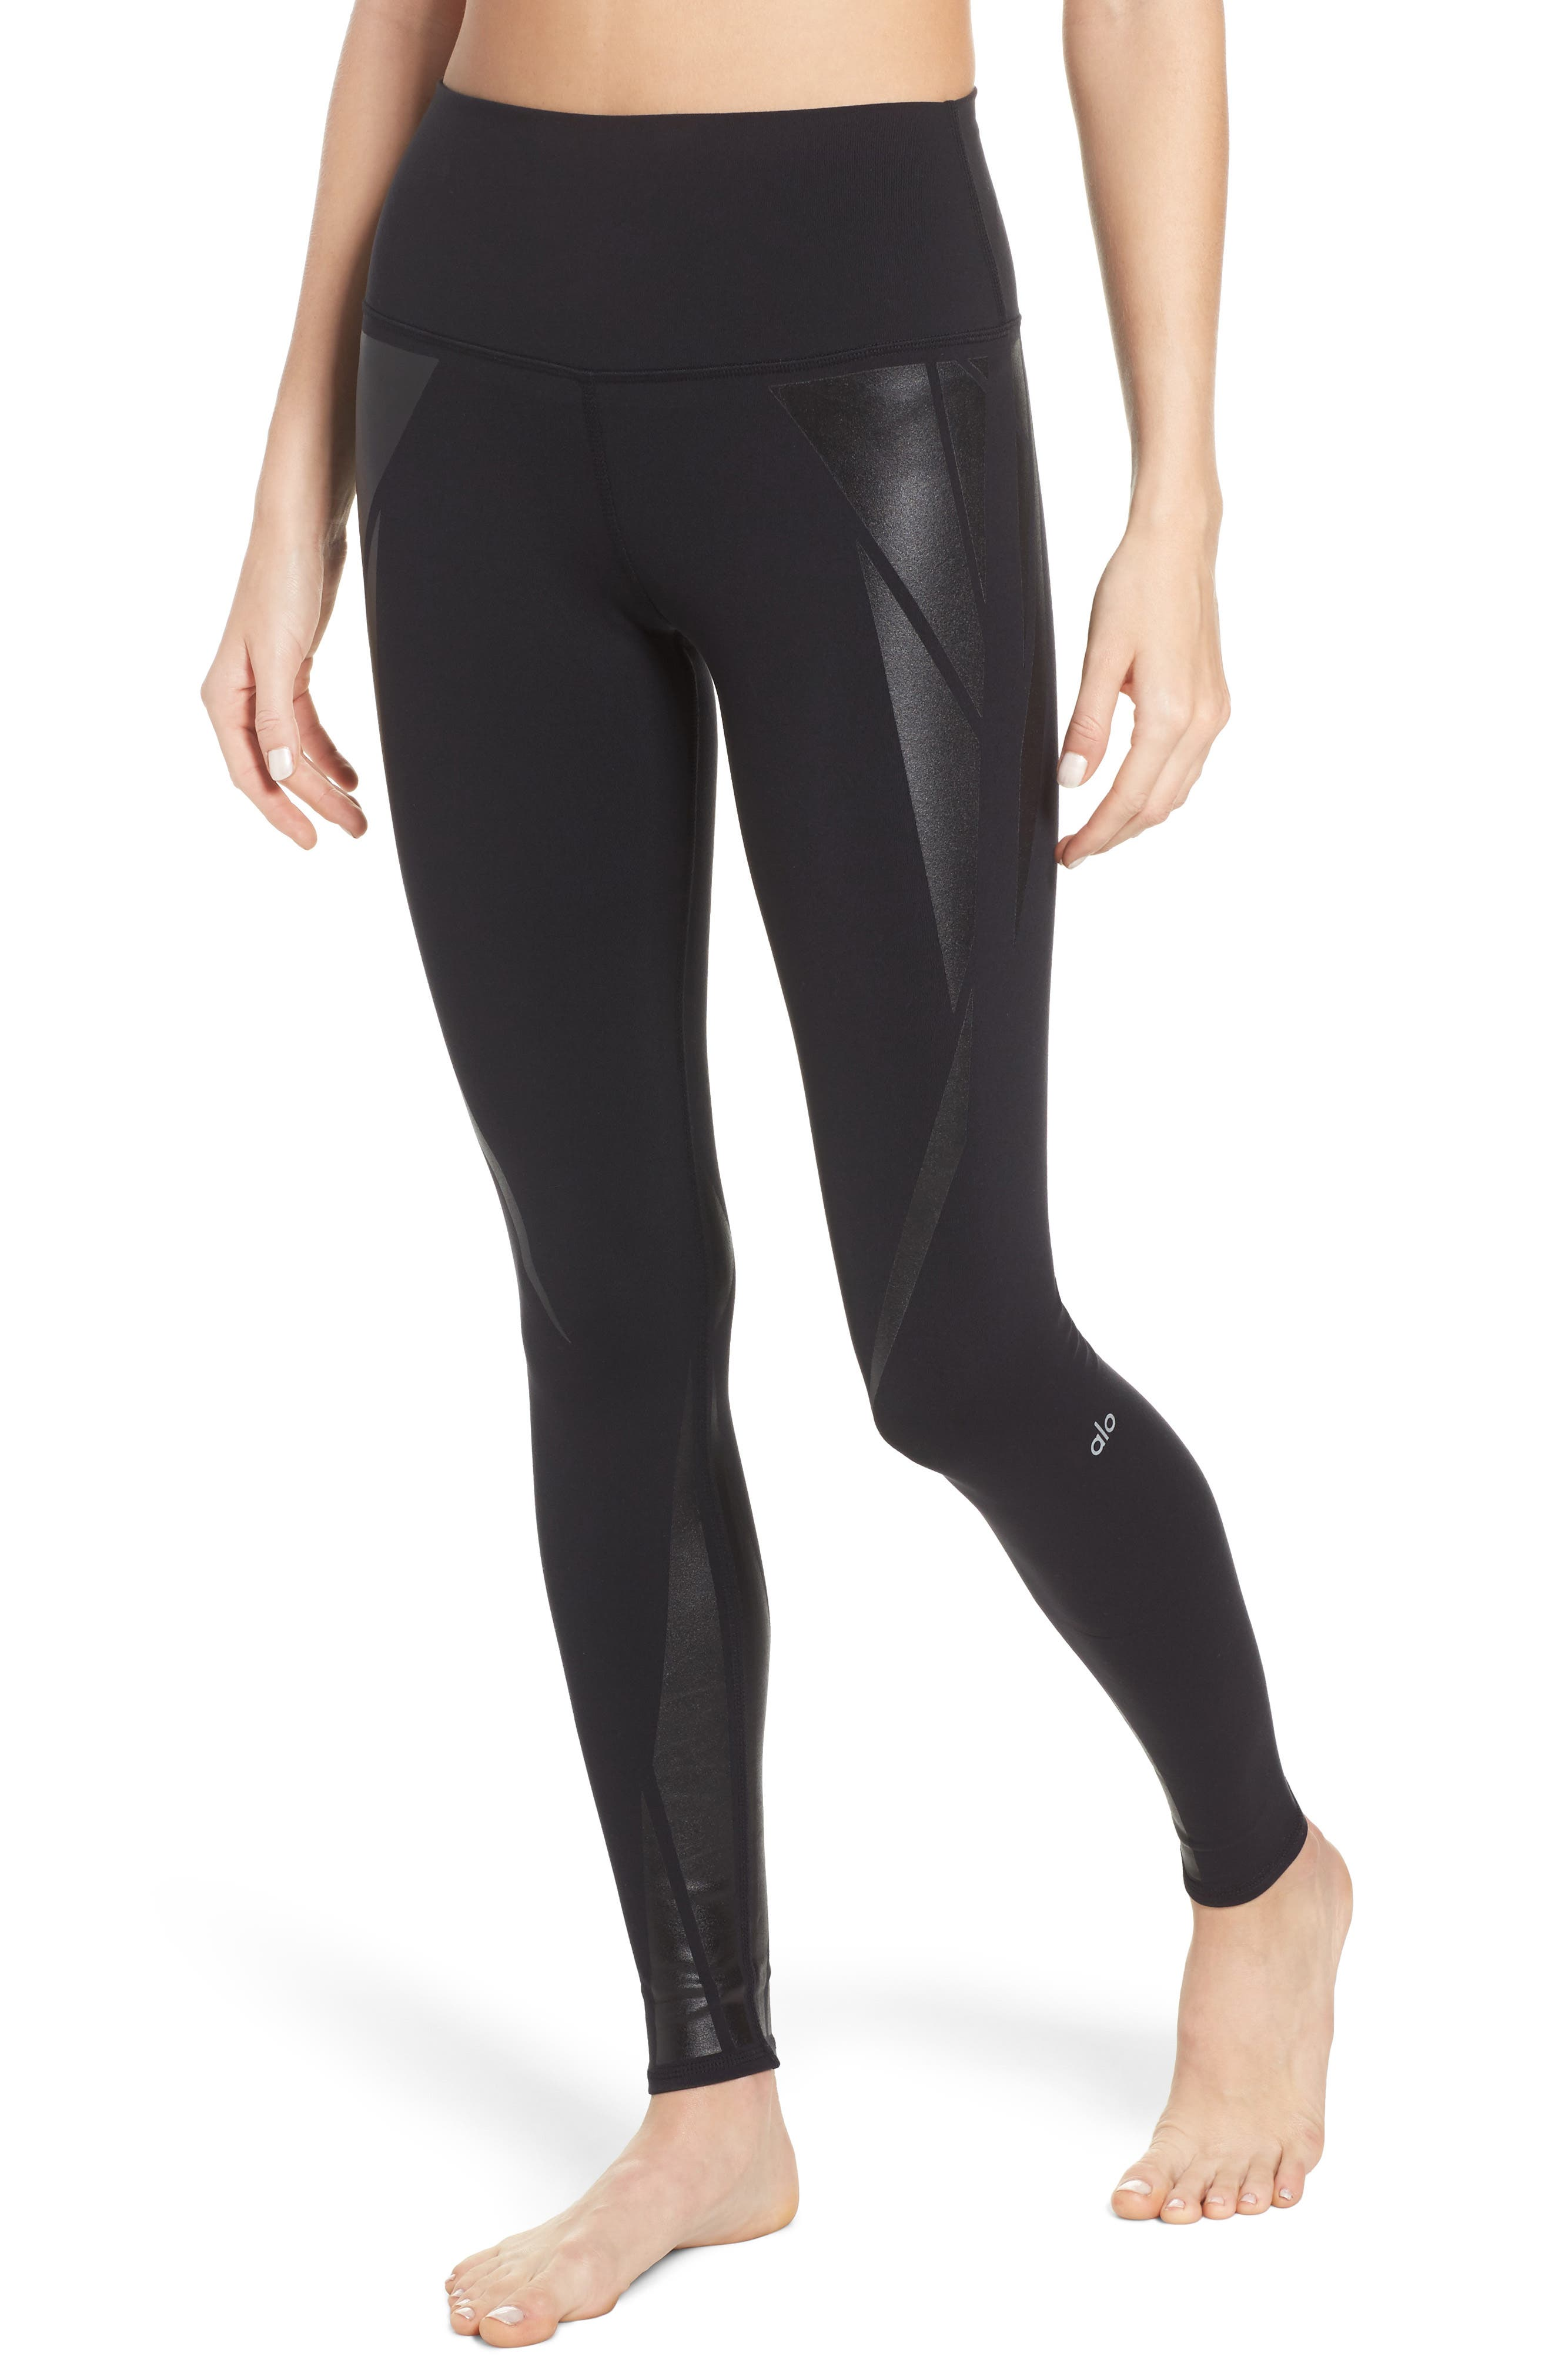 Airbrush High Waist Leggings,                             Main thumbnail 1, color,                             011